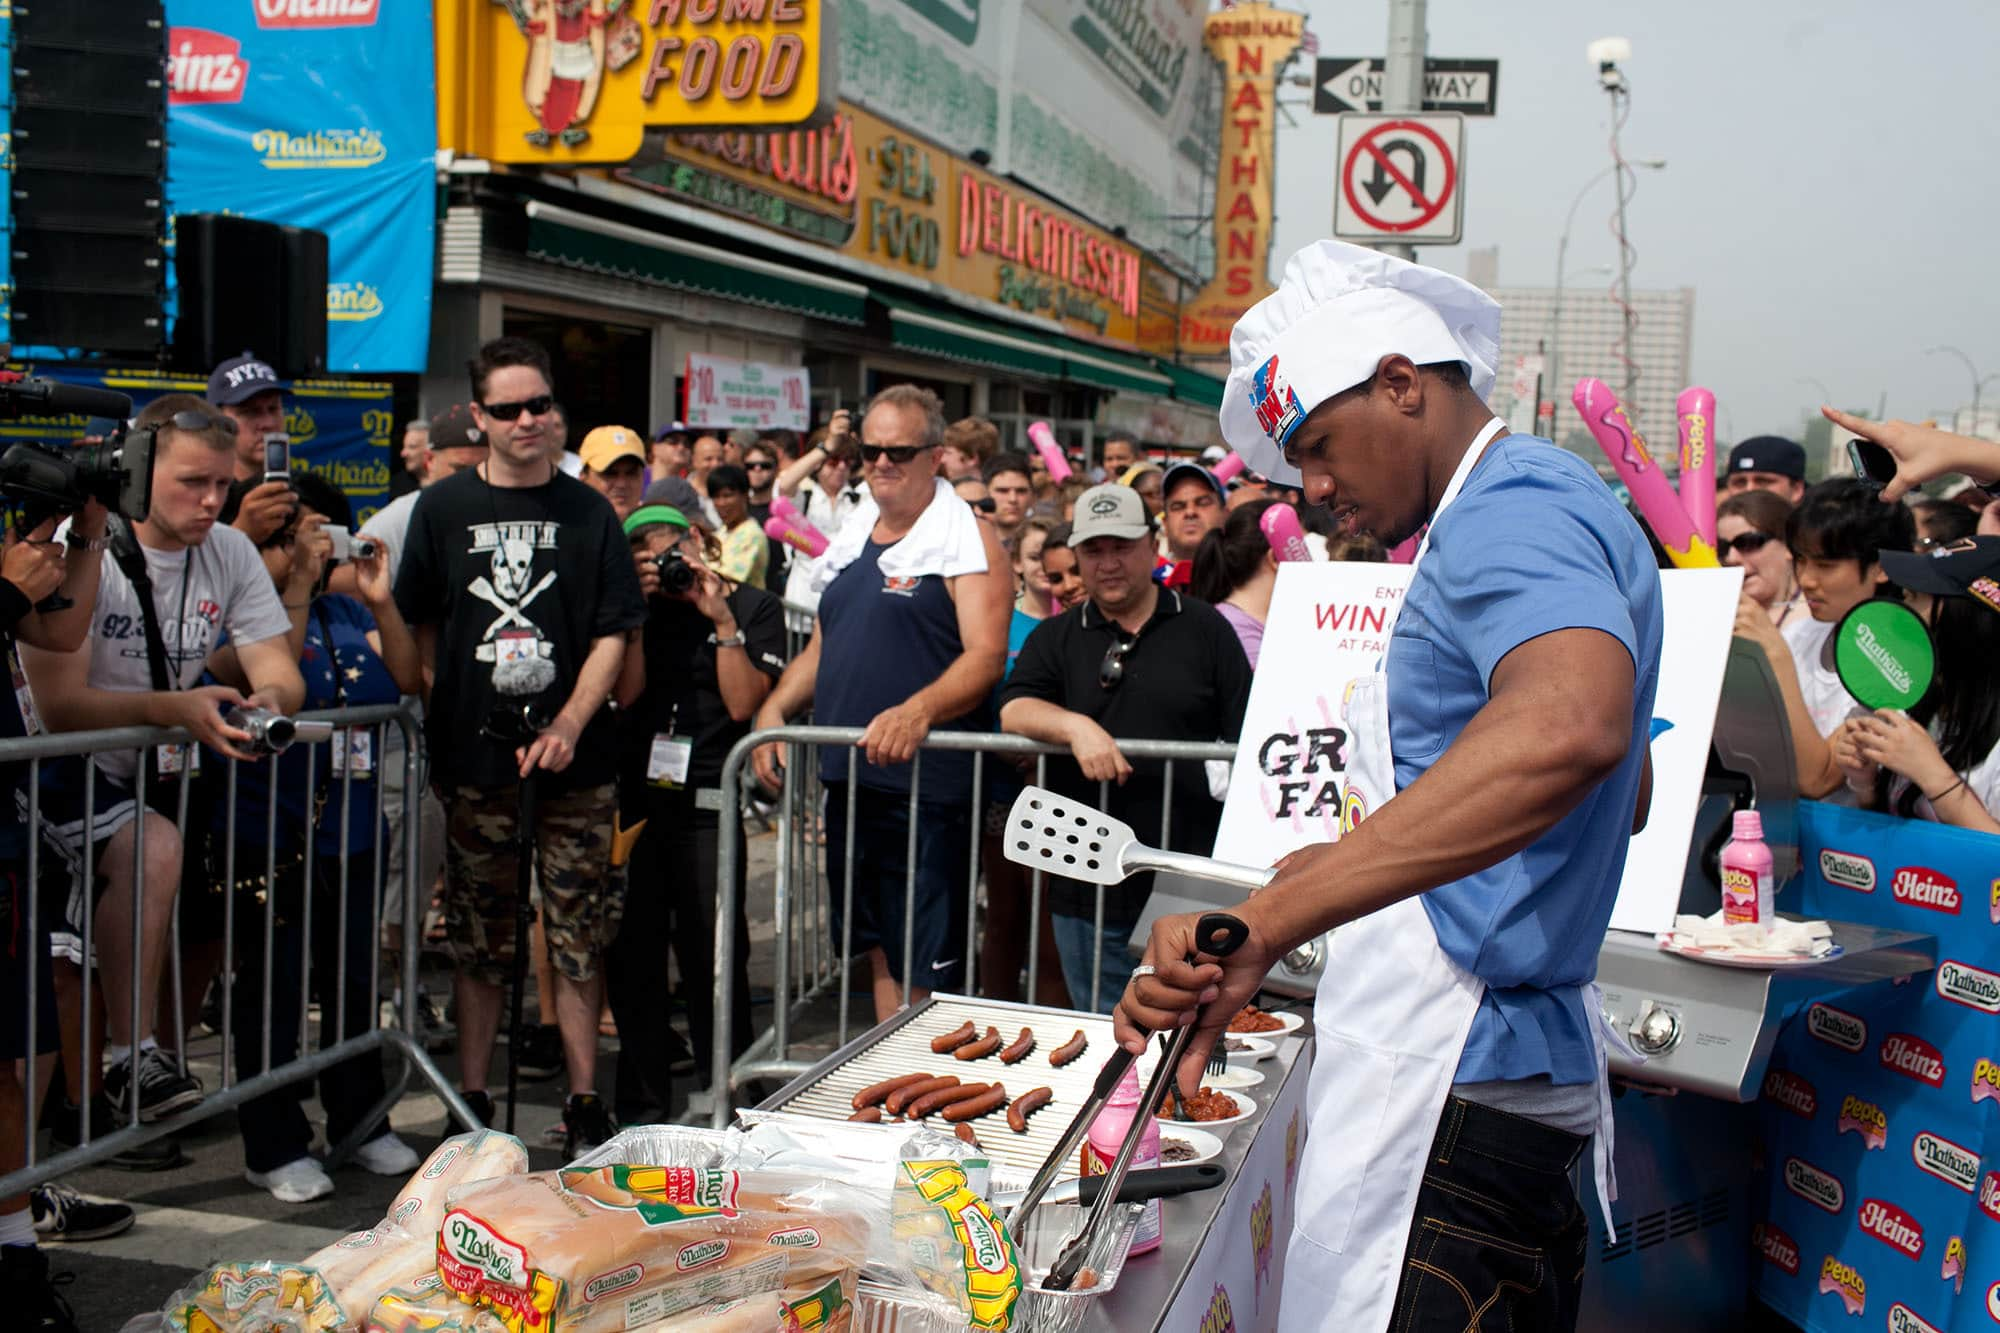 Nick Cannon at the grill for the hot dog eating contest